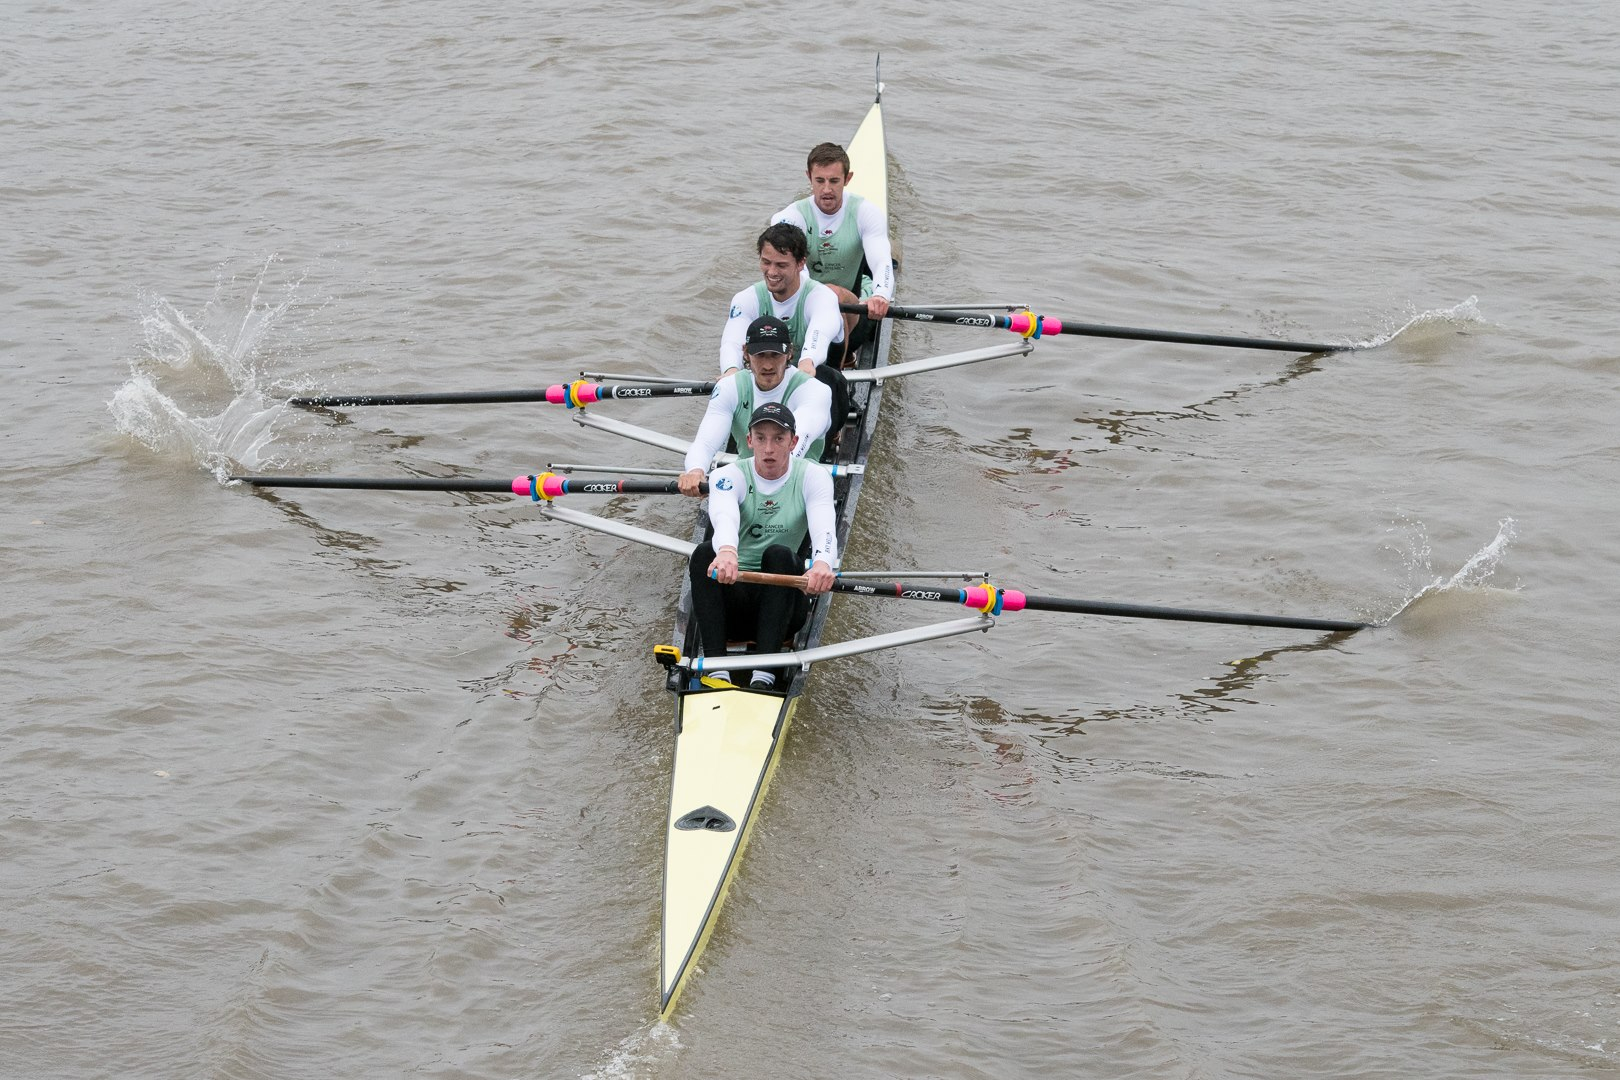 Winners of the Elite Coxed Four pennant (Henry Meek, Lance Tredell, Pat Eble, Ben Ruble and Ian Middleton). Photo: Mark Ruscoe